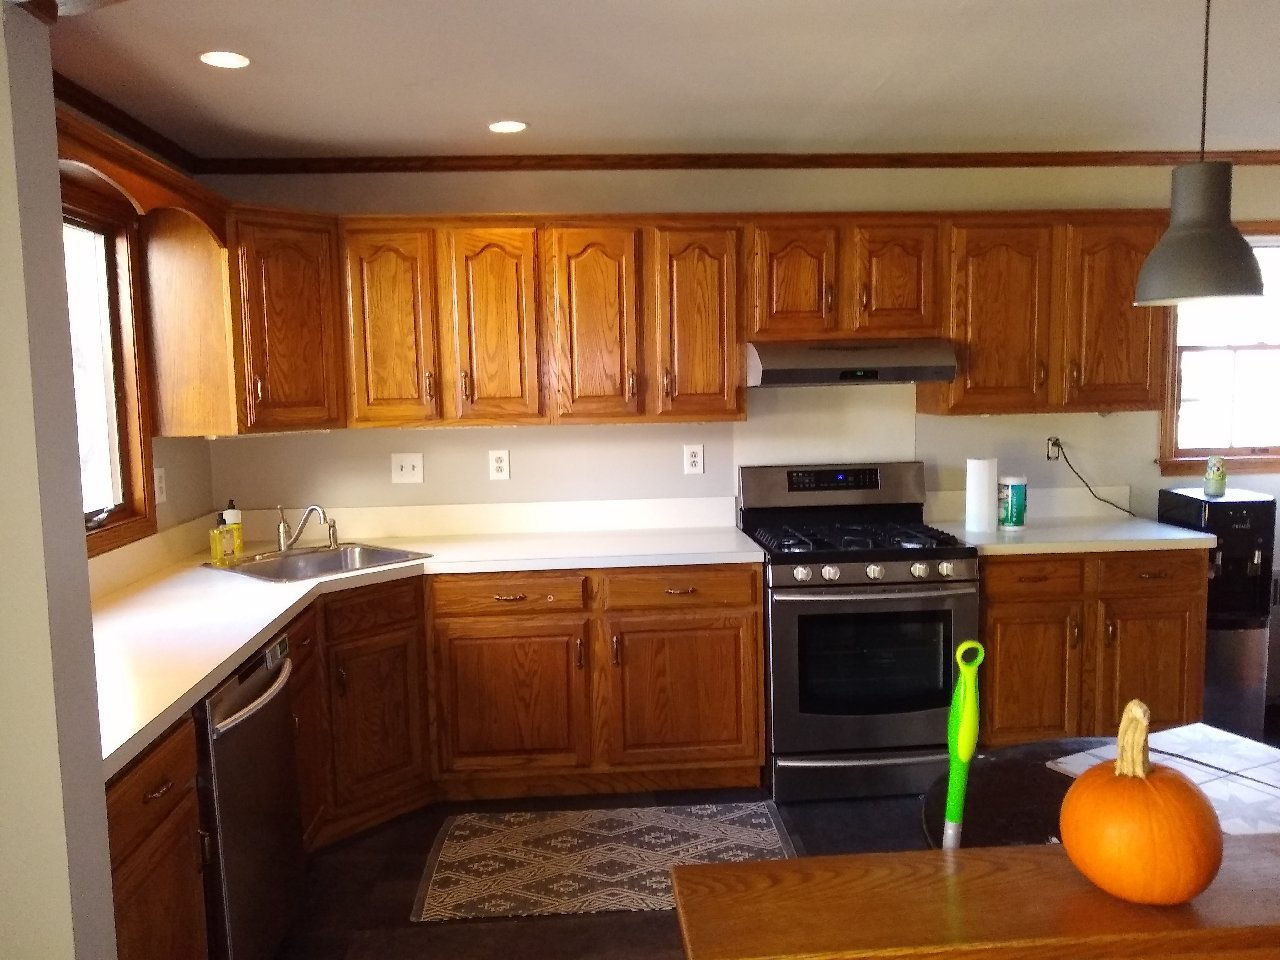 Opinion on crown-old-kitchen-stove-wall.jpg